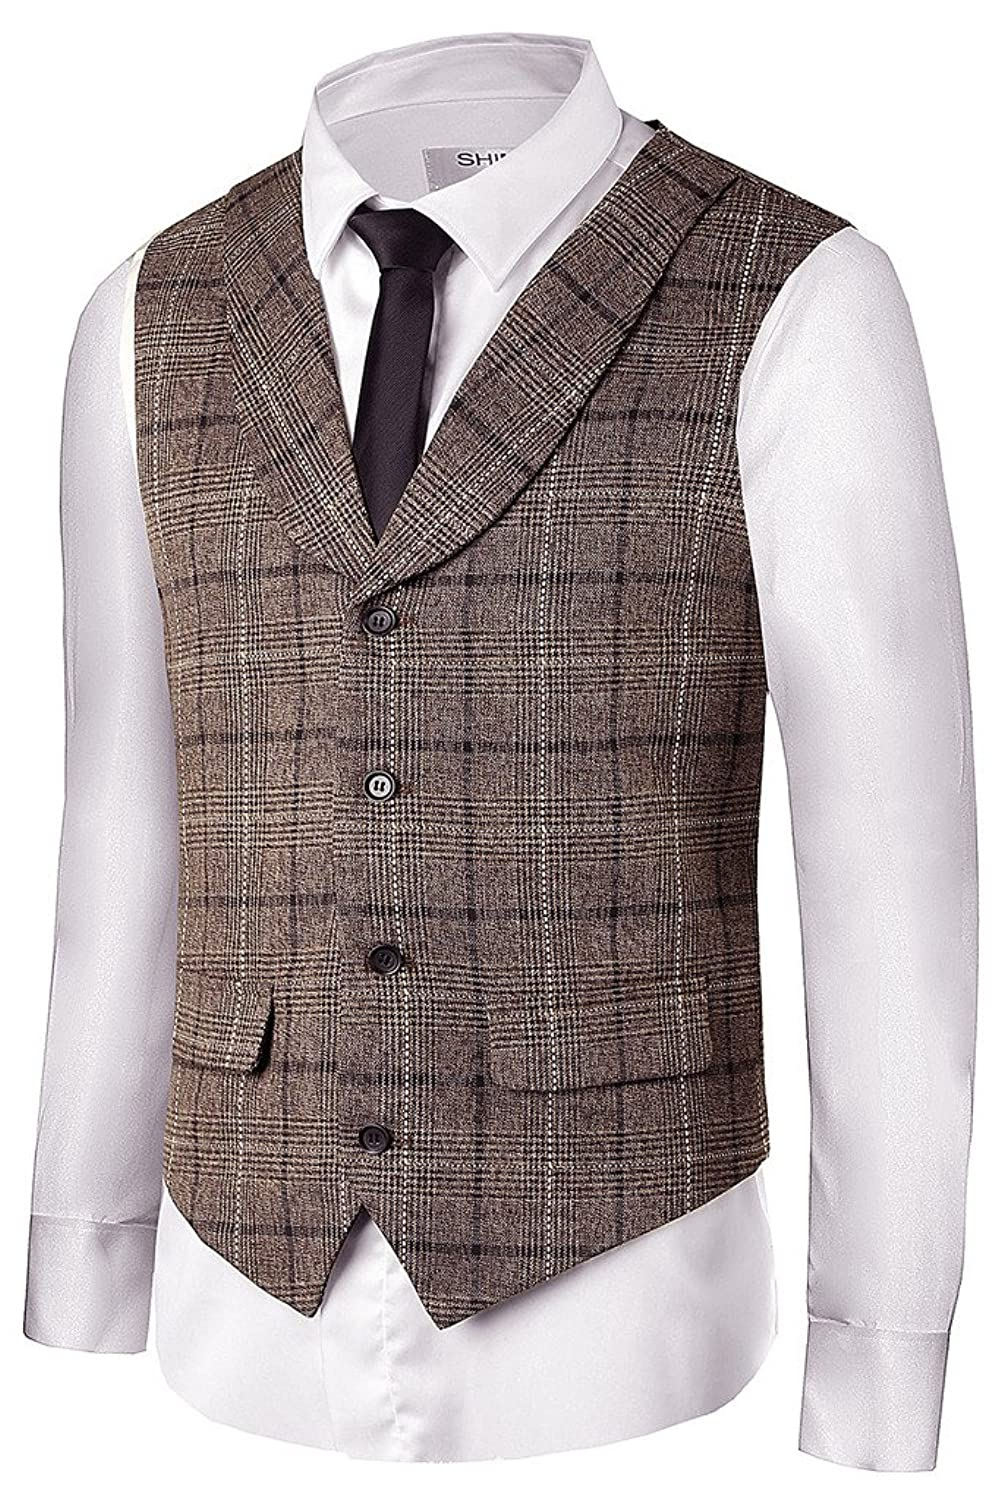 Men's Vintage Vests, Sweater Vests Hanayome Mens Gentleman Top Design Casual Waistcoat Business Suit Vest VS17 $28.50 AT vintagedancer.com